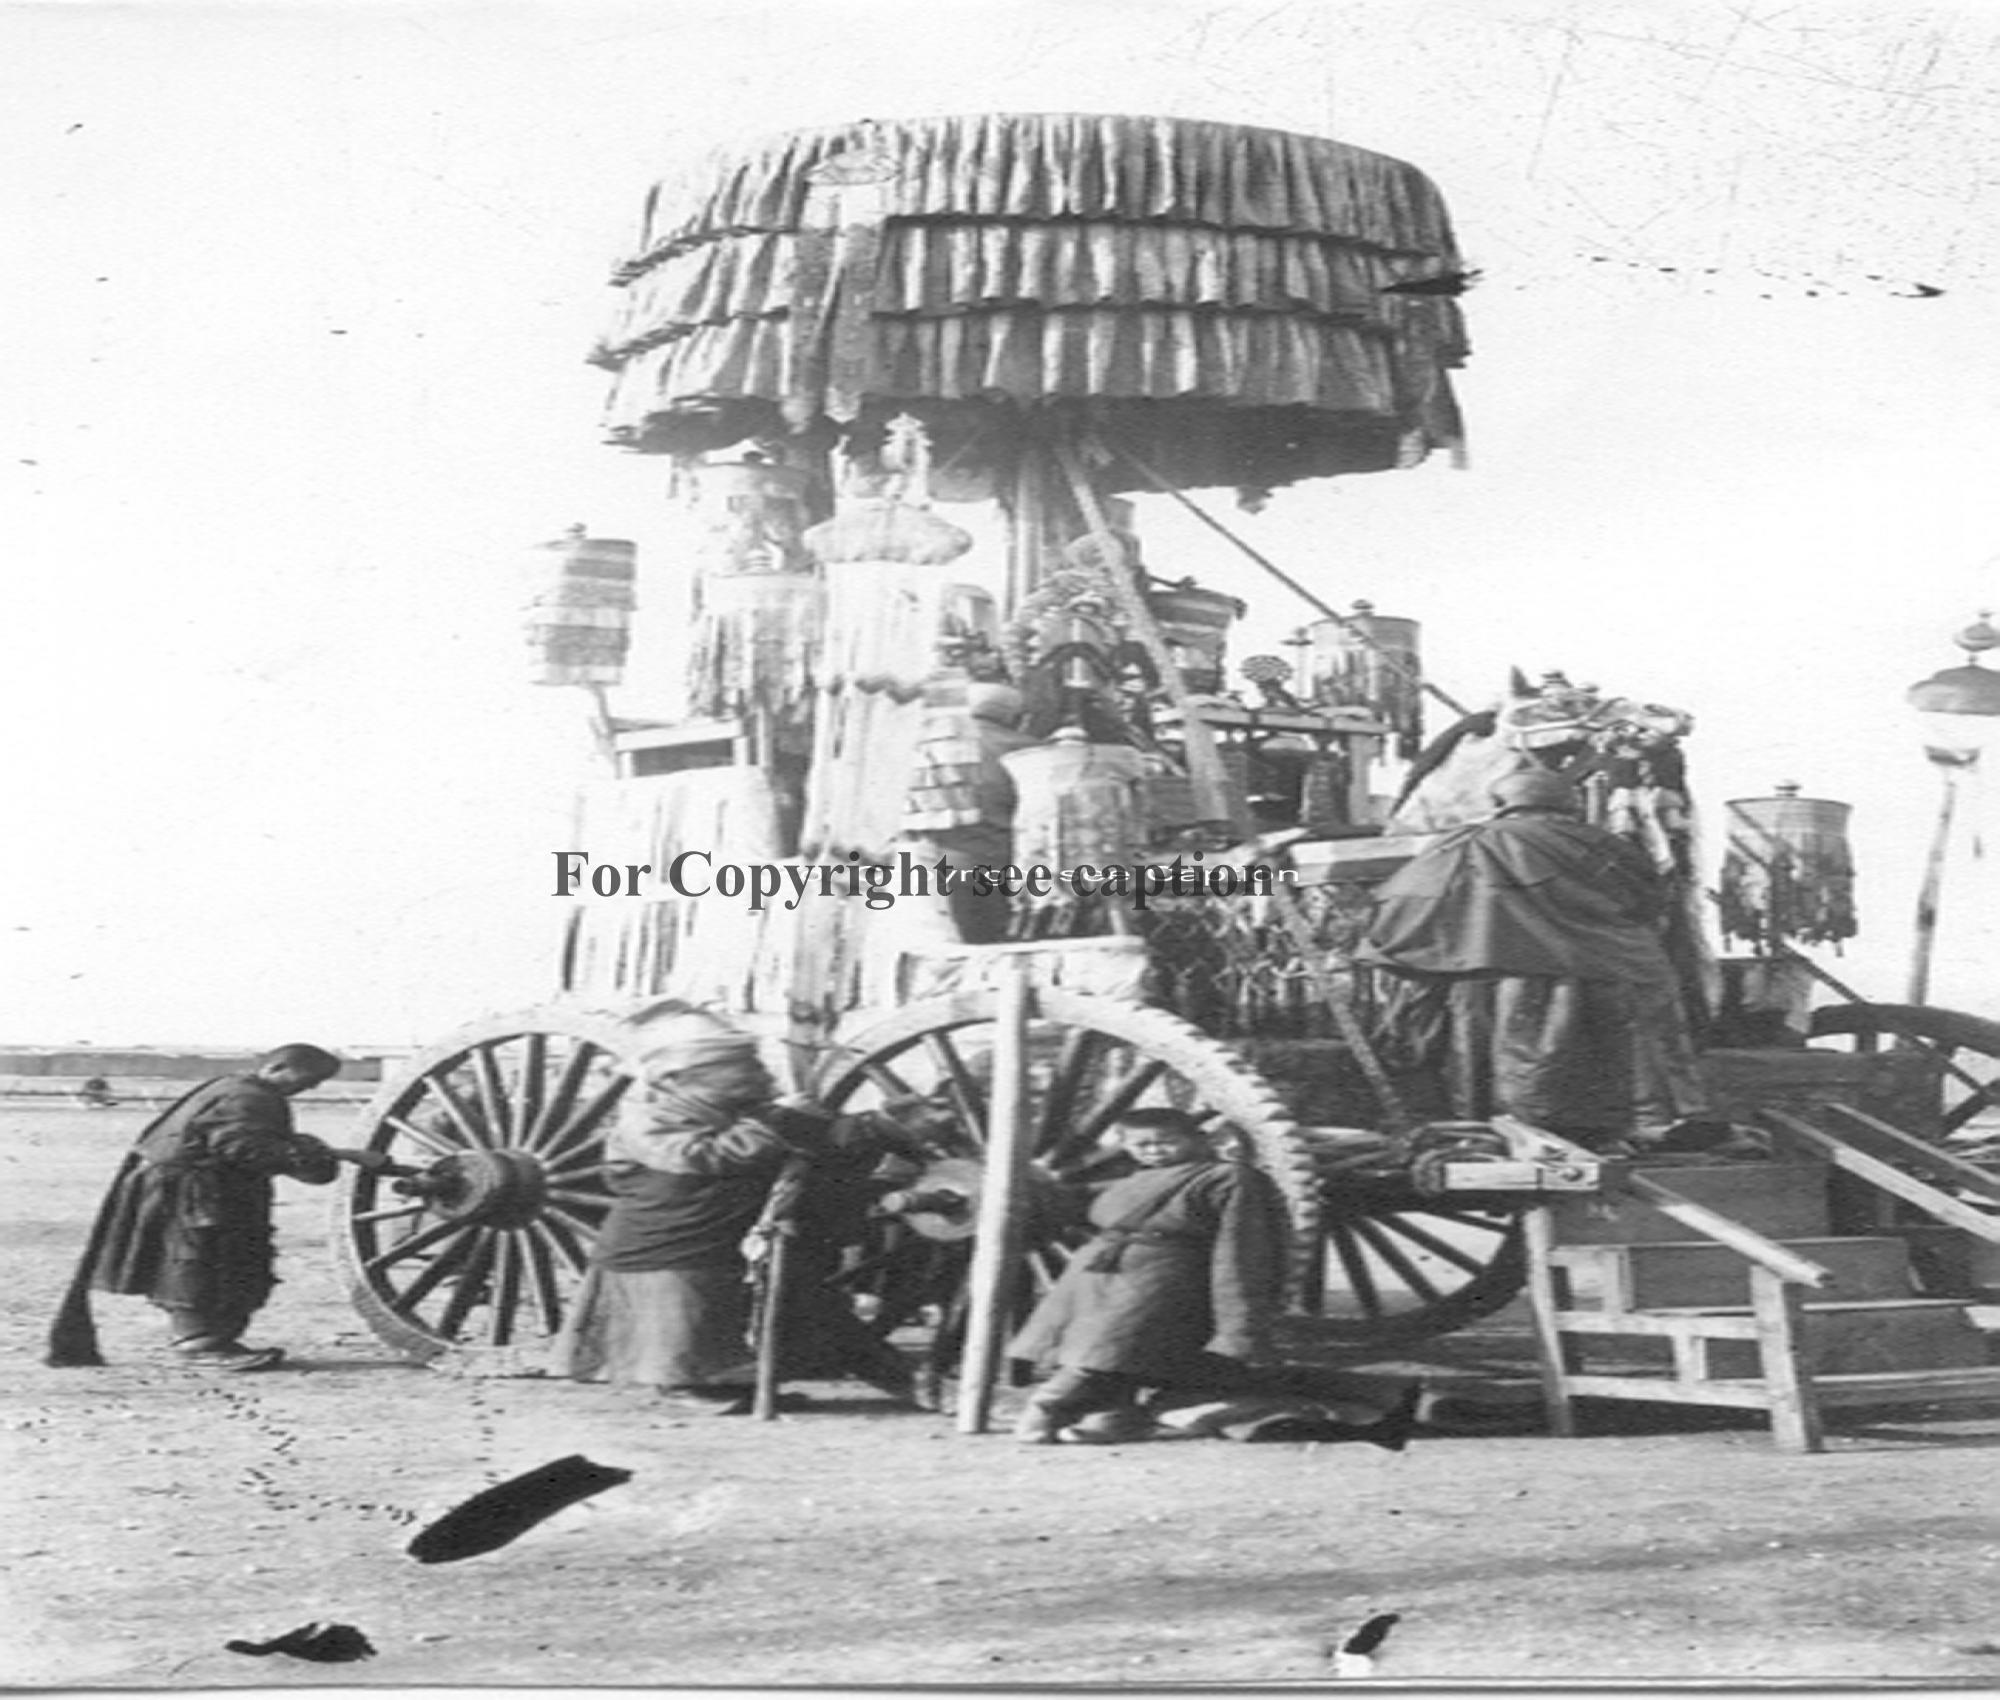 Maitreya's cart. Film Archives K-24833